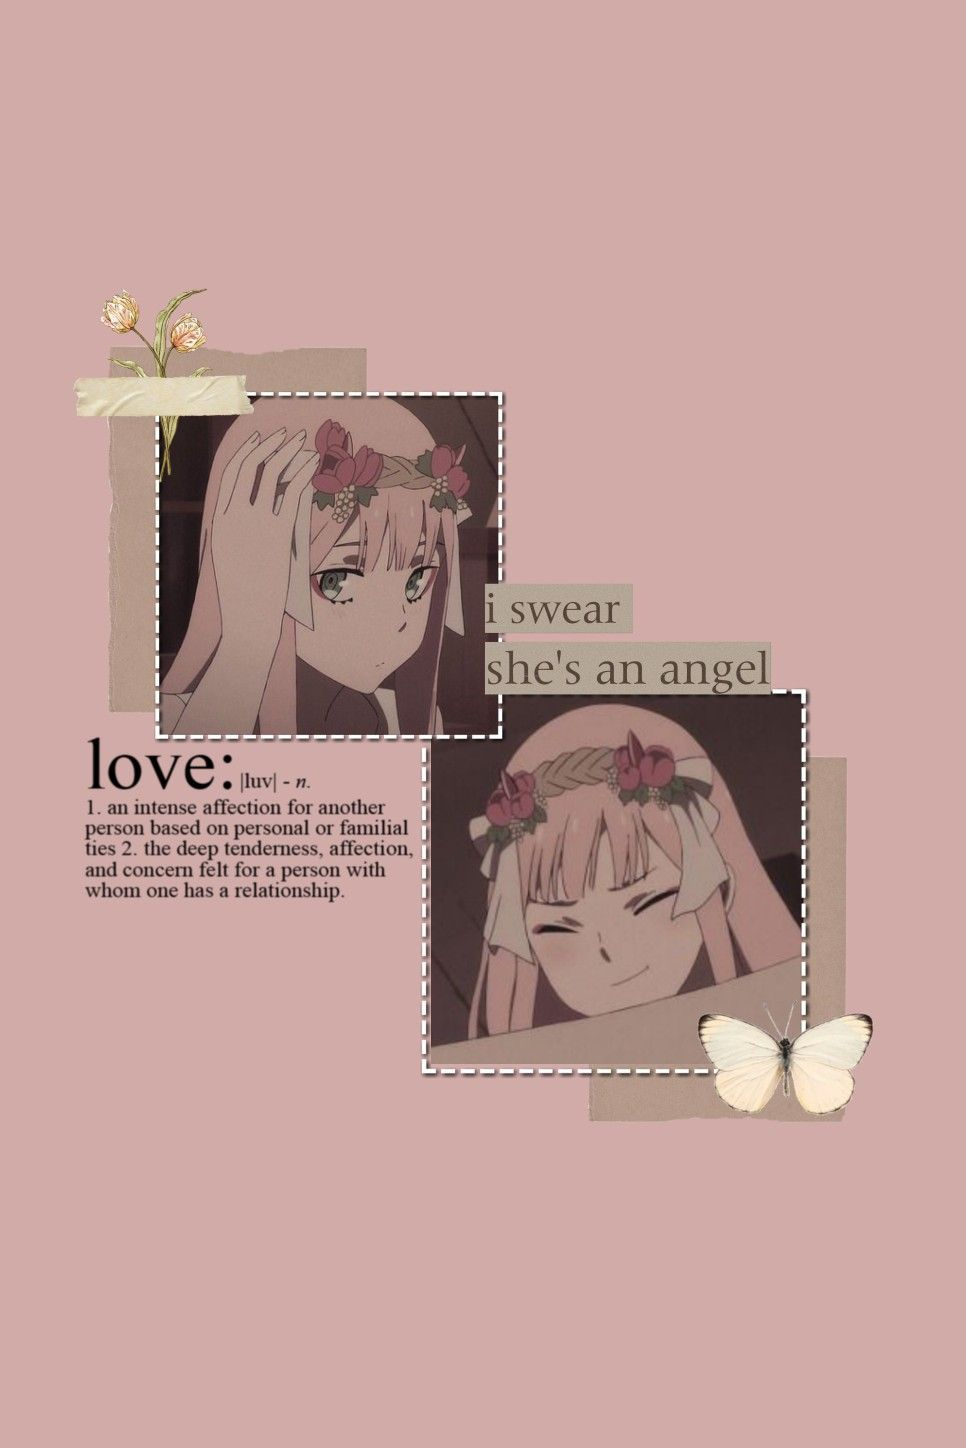 Zero Two Wallpaper Aesthetic Pink Wallpaper Anime Anime Wallpaper Iphone Cool Anime Pictures